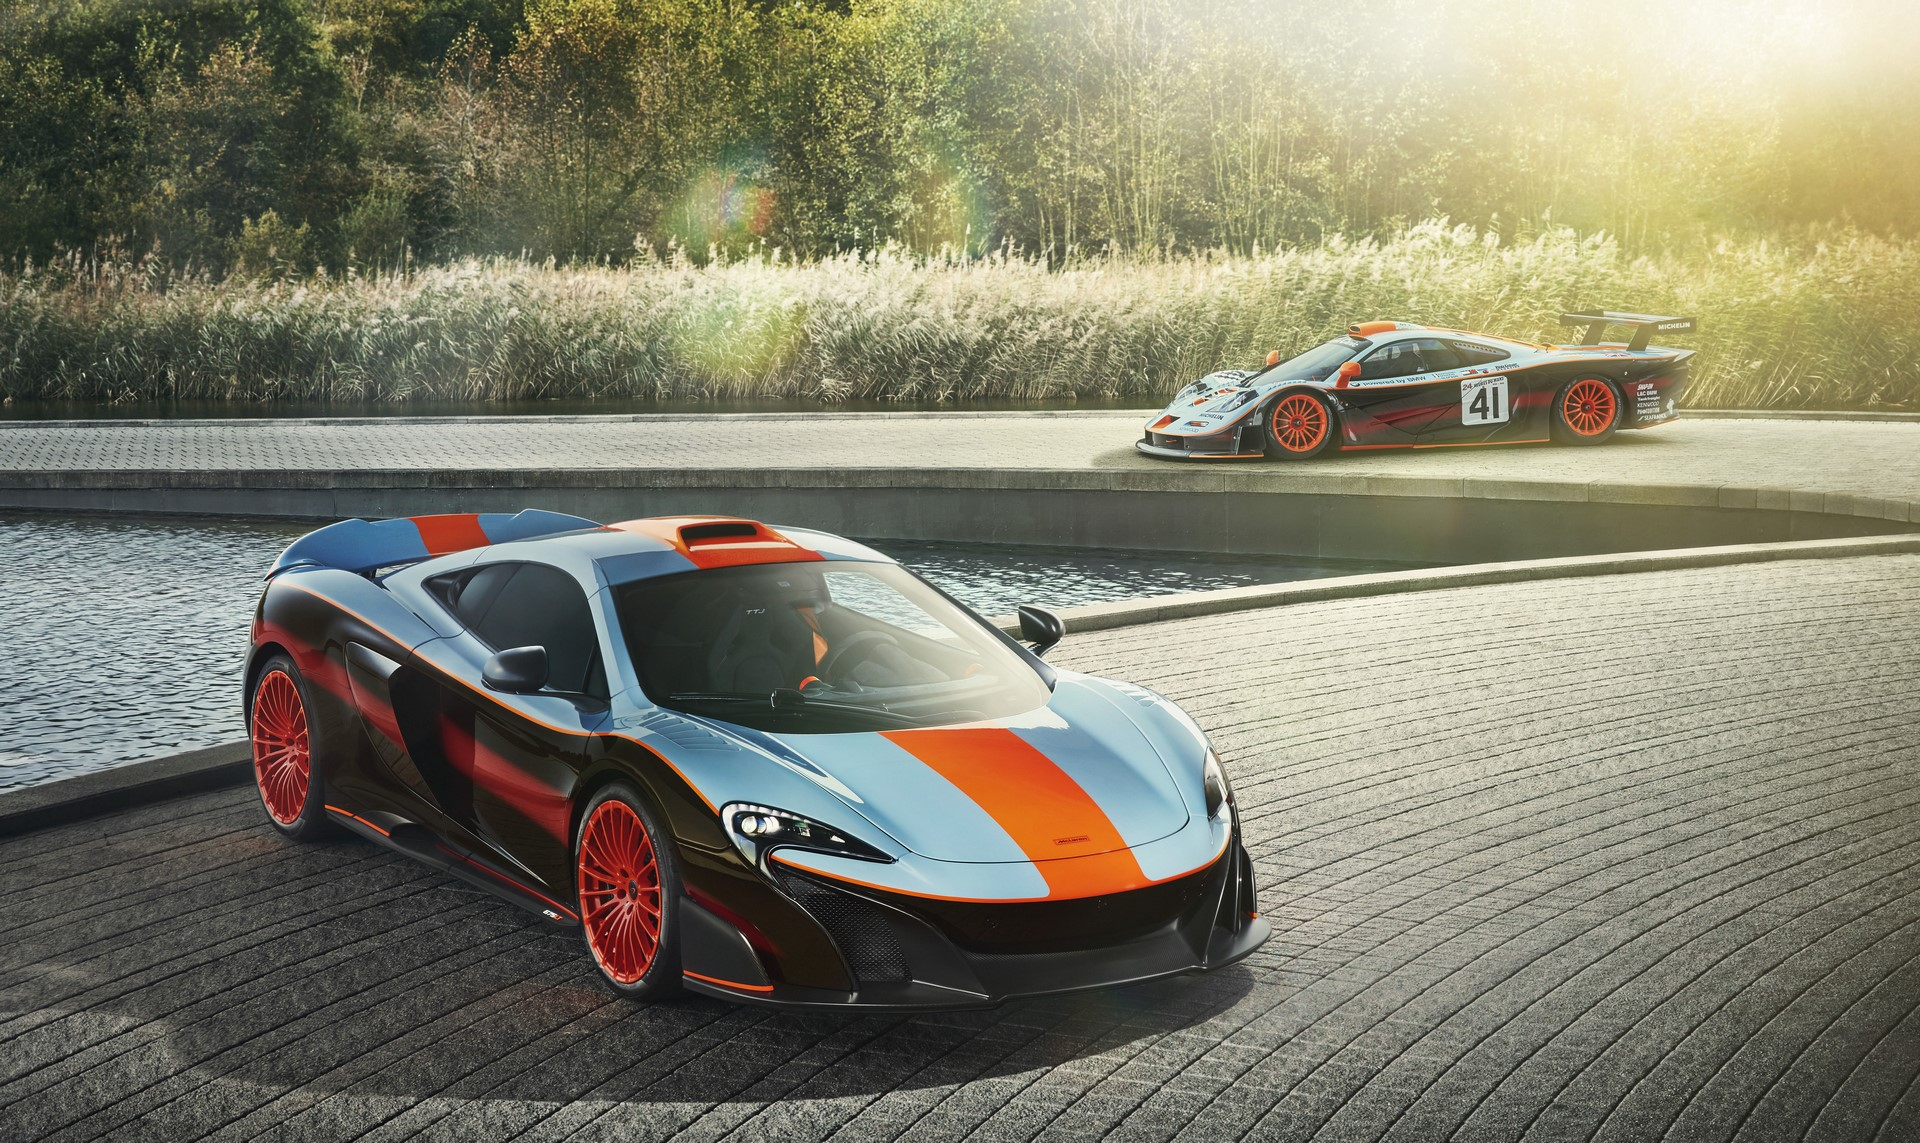 McLaren_MSO-Gulf Racing 675LT with 1997 F1 GTR Longtail